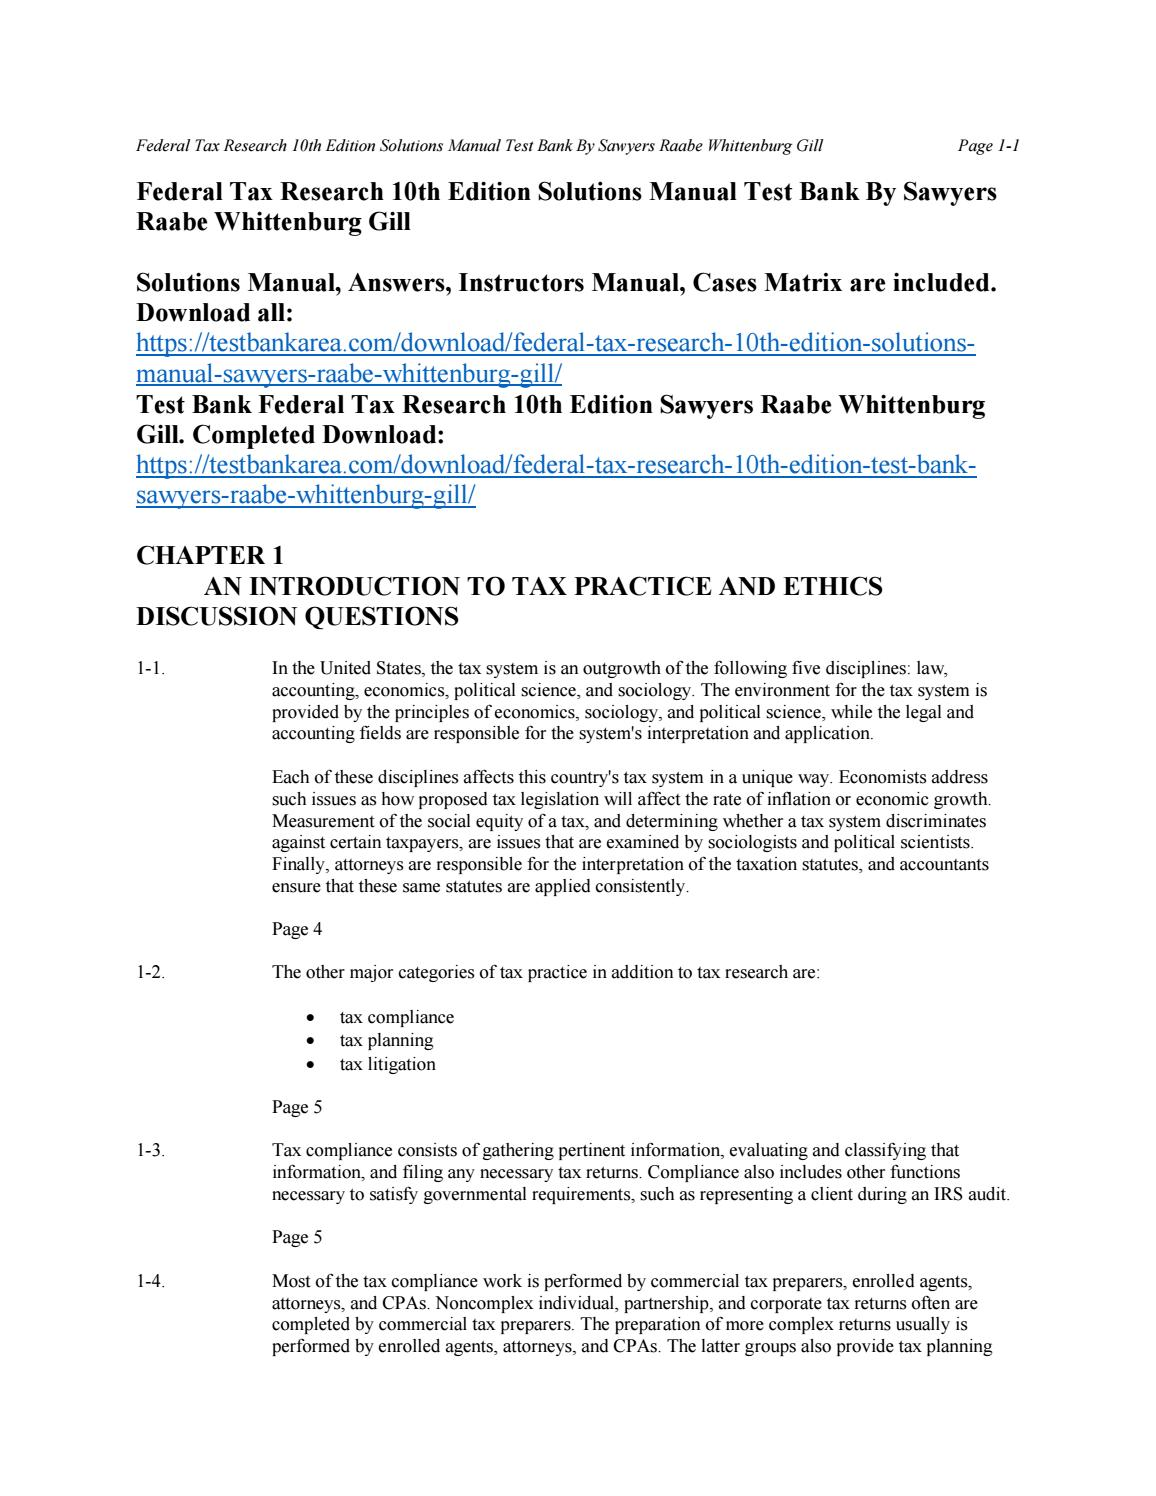 Federal tax research 10th edition solutions manual sawyers raabe  whittenburg gill by Westerfield - issuu